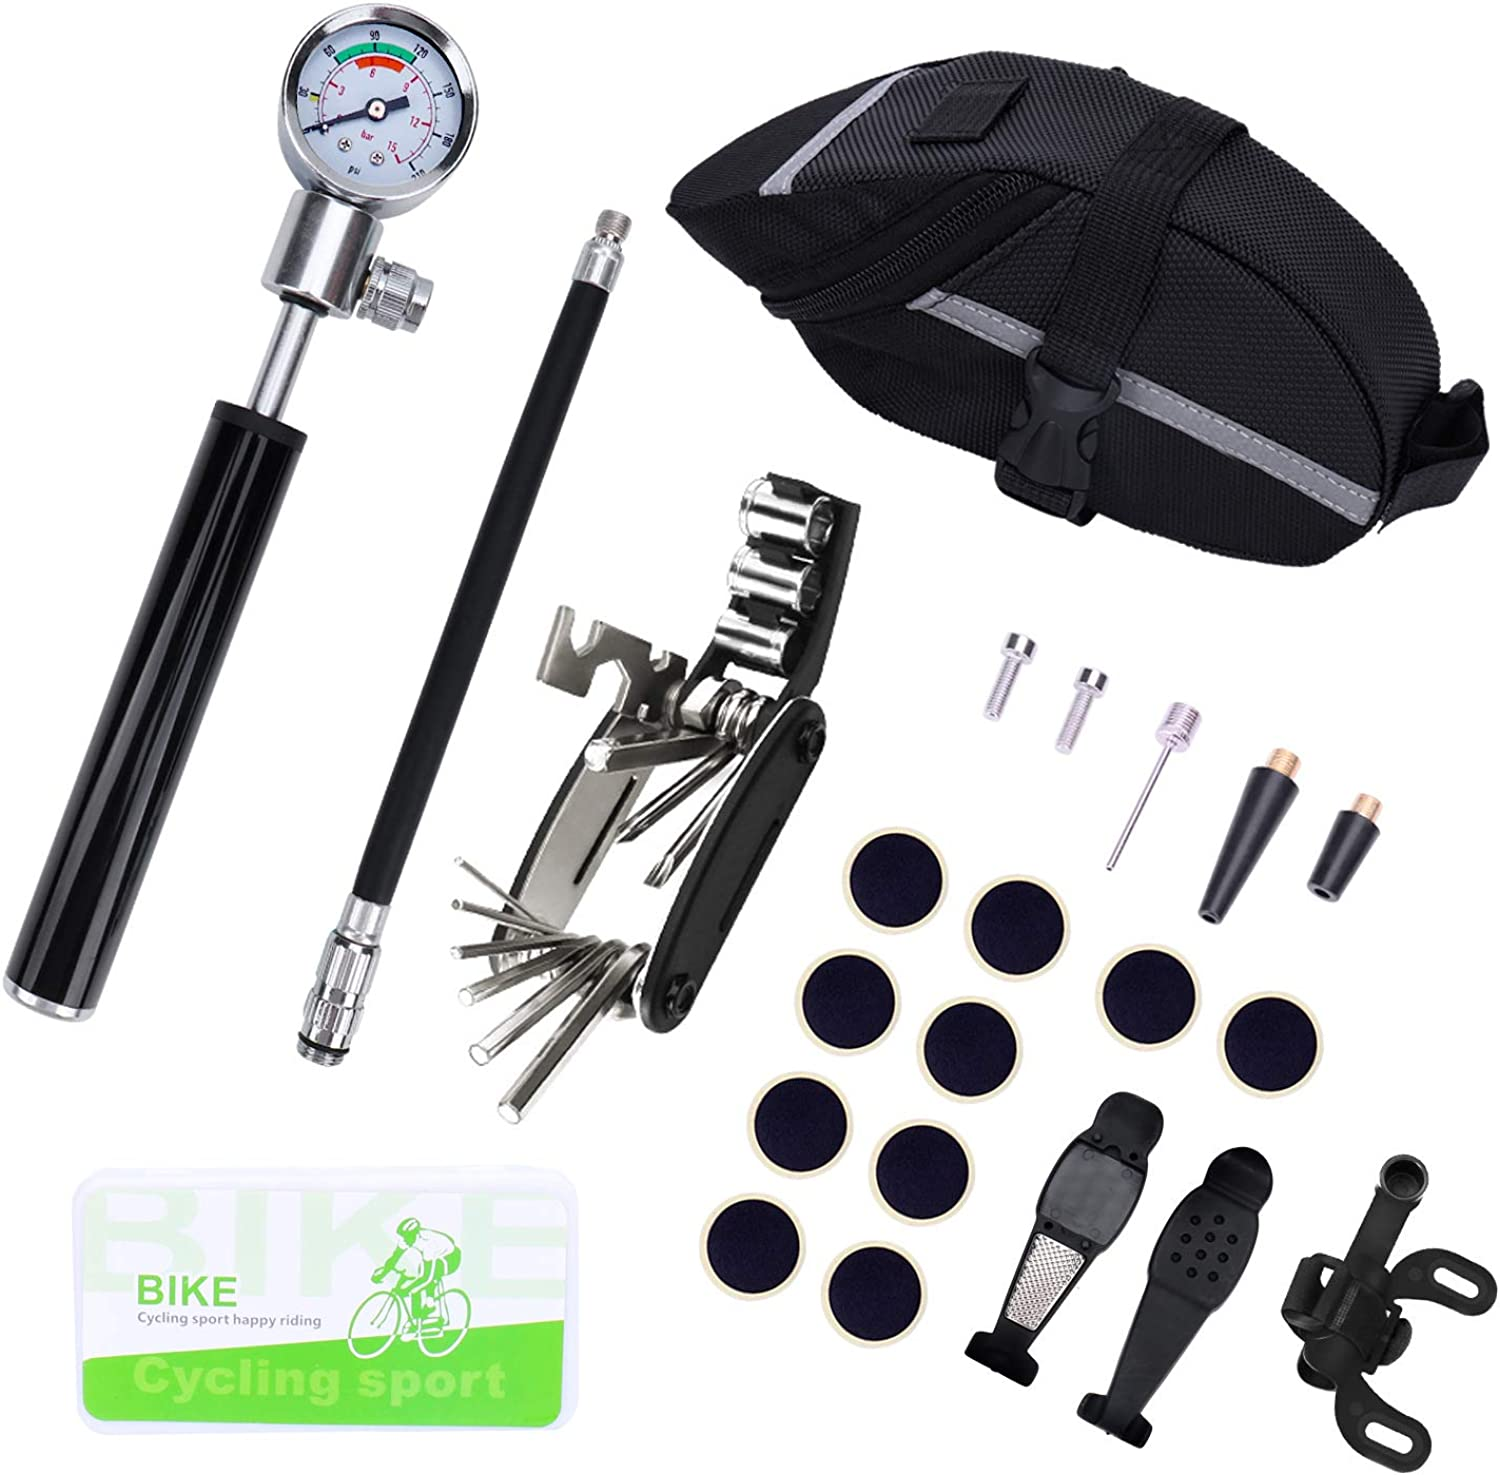 Bike Repair Tool Kit, Mini Bicycle Pump with Pressure Gauge[210 PSI] + 16in1 Screwdriver + Waterproof Seat Bag + Glueless Patches etc. for Presta Schrader